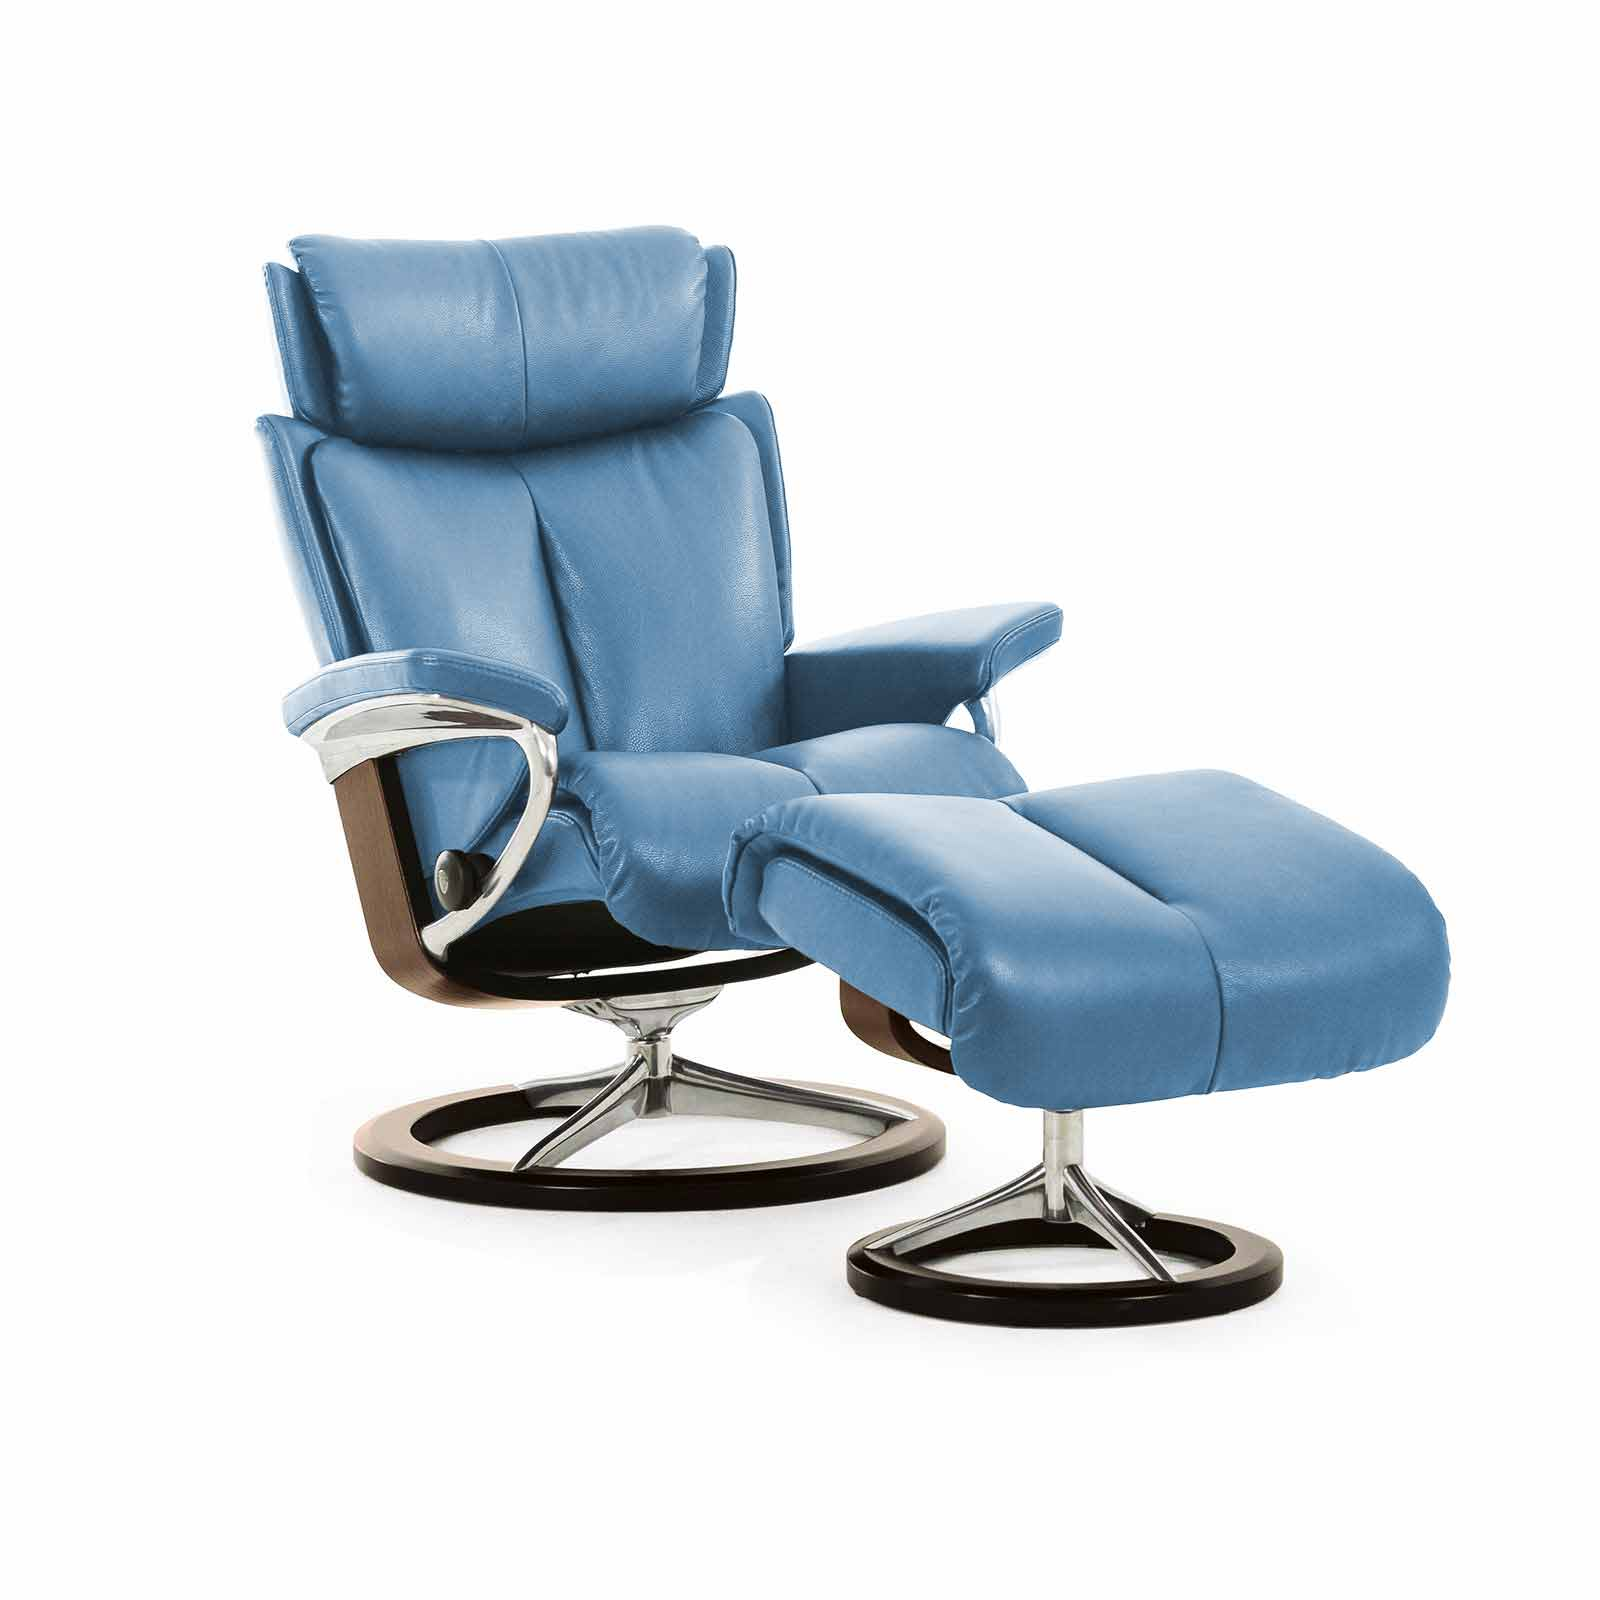 Stressless Magic Signature Sessel Verkauft Stressless Magic Signature M Leder Paloma Sparrow Blue Holzfarbe Walnuss Mit Hocker